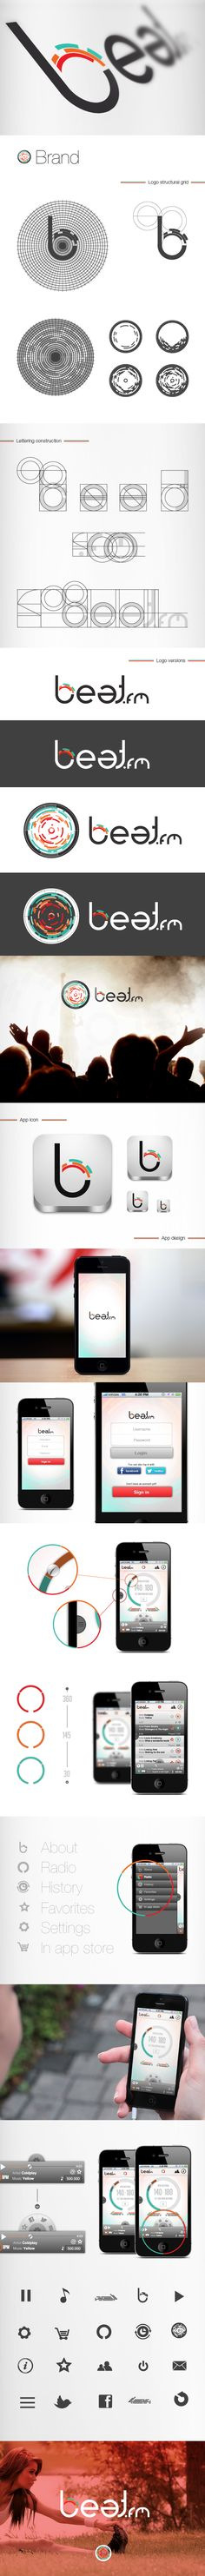 Beat.fm by Fábio Pereira, via Behance Beat.fm can be baught at: https://itunes.apple.com/br/app/beat.fm-your-exercise-radio/id622580051?l=en=8